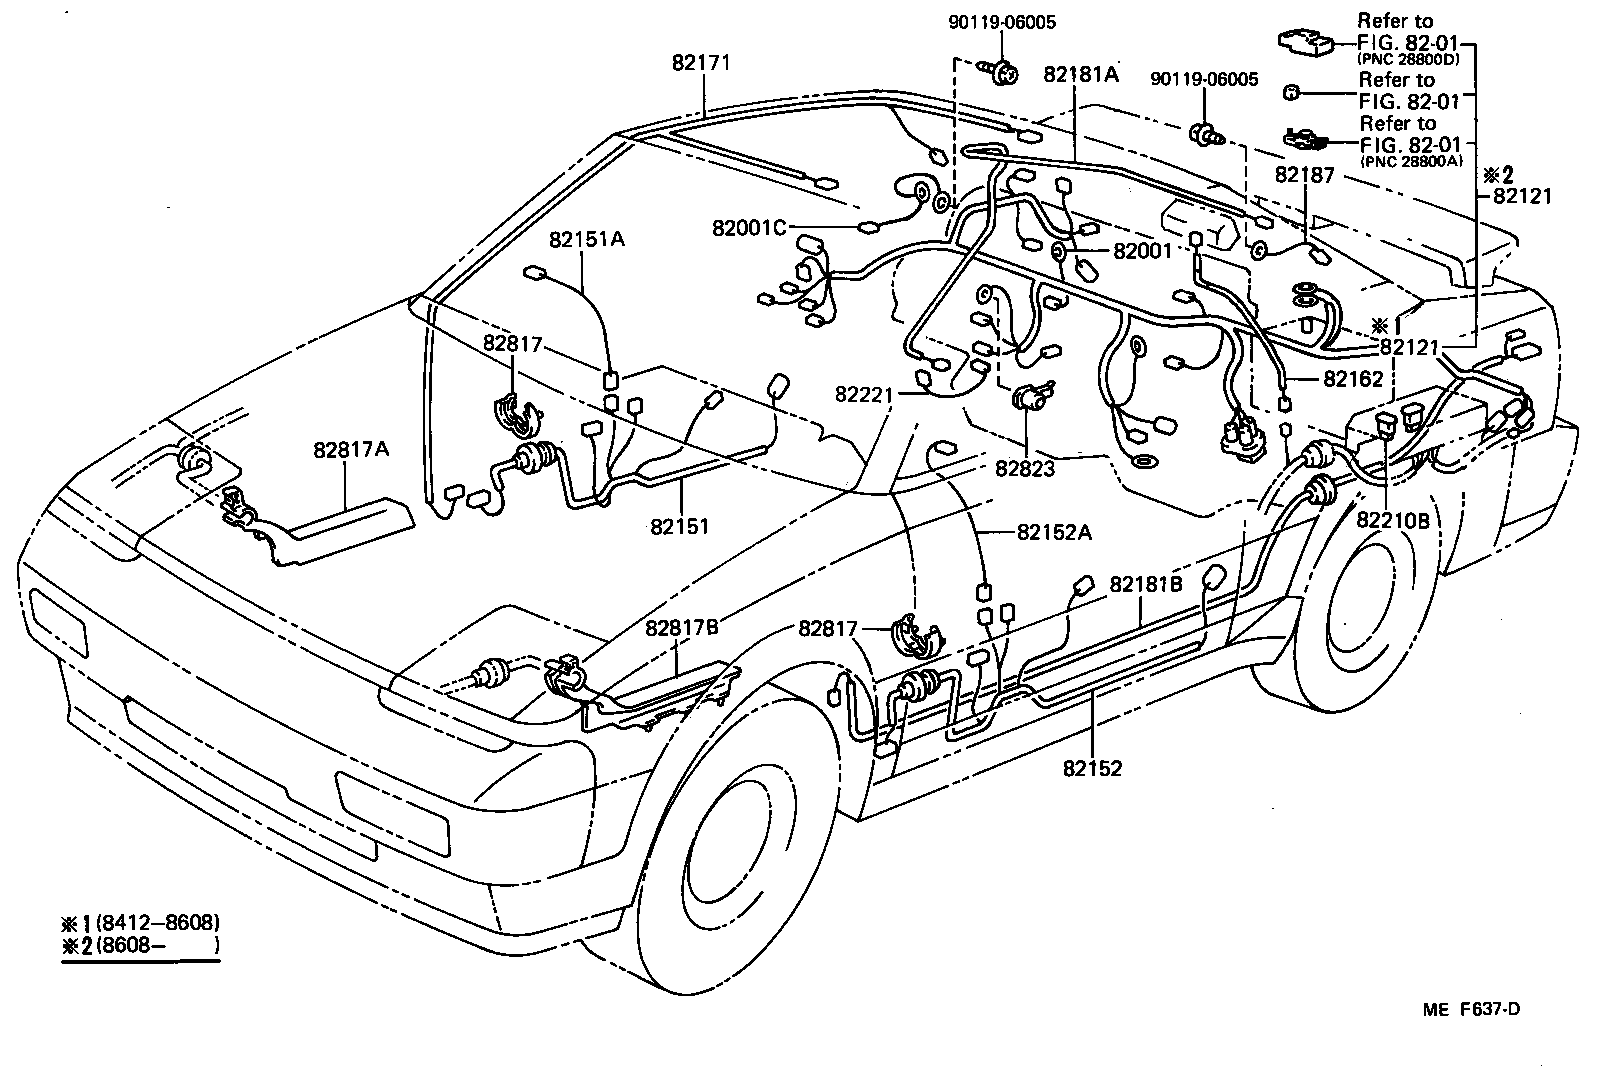 Wiring Diagram For Toyota Mr2 Stereo